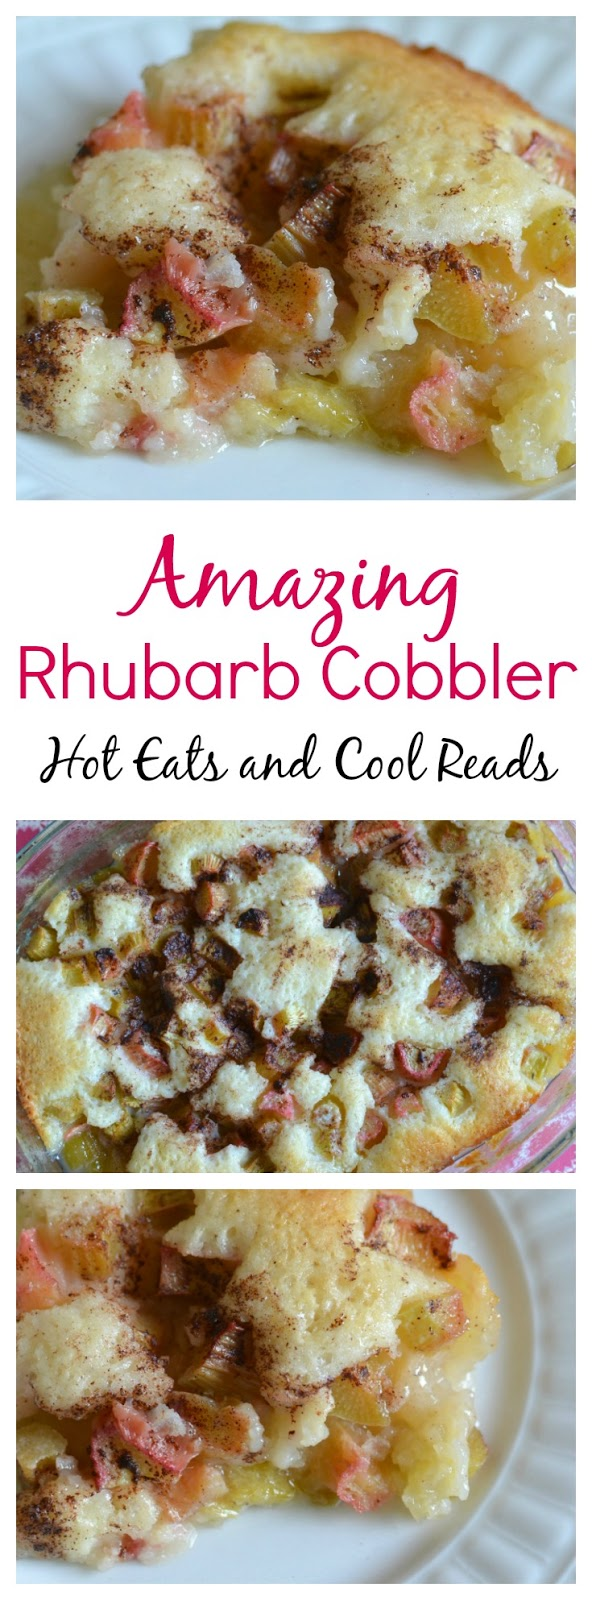 This lovely springtime dessert couldn't be any easier! Ready in less than an hour and so good with the sweet and tangy flavors! Amazing Rhubarb Cobbler Recipe from Hot Eats and Cool Reads